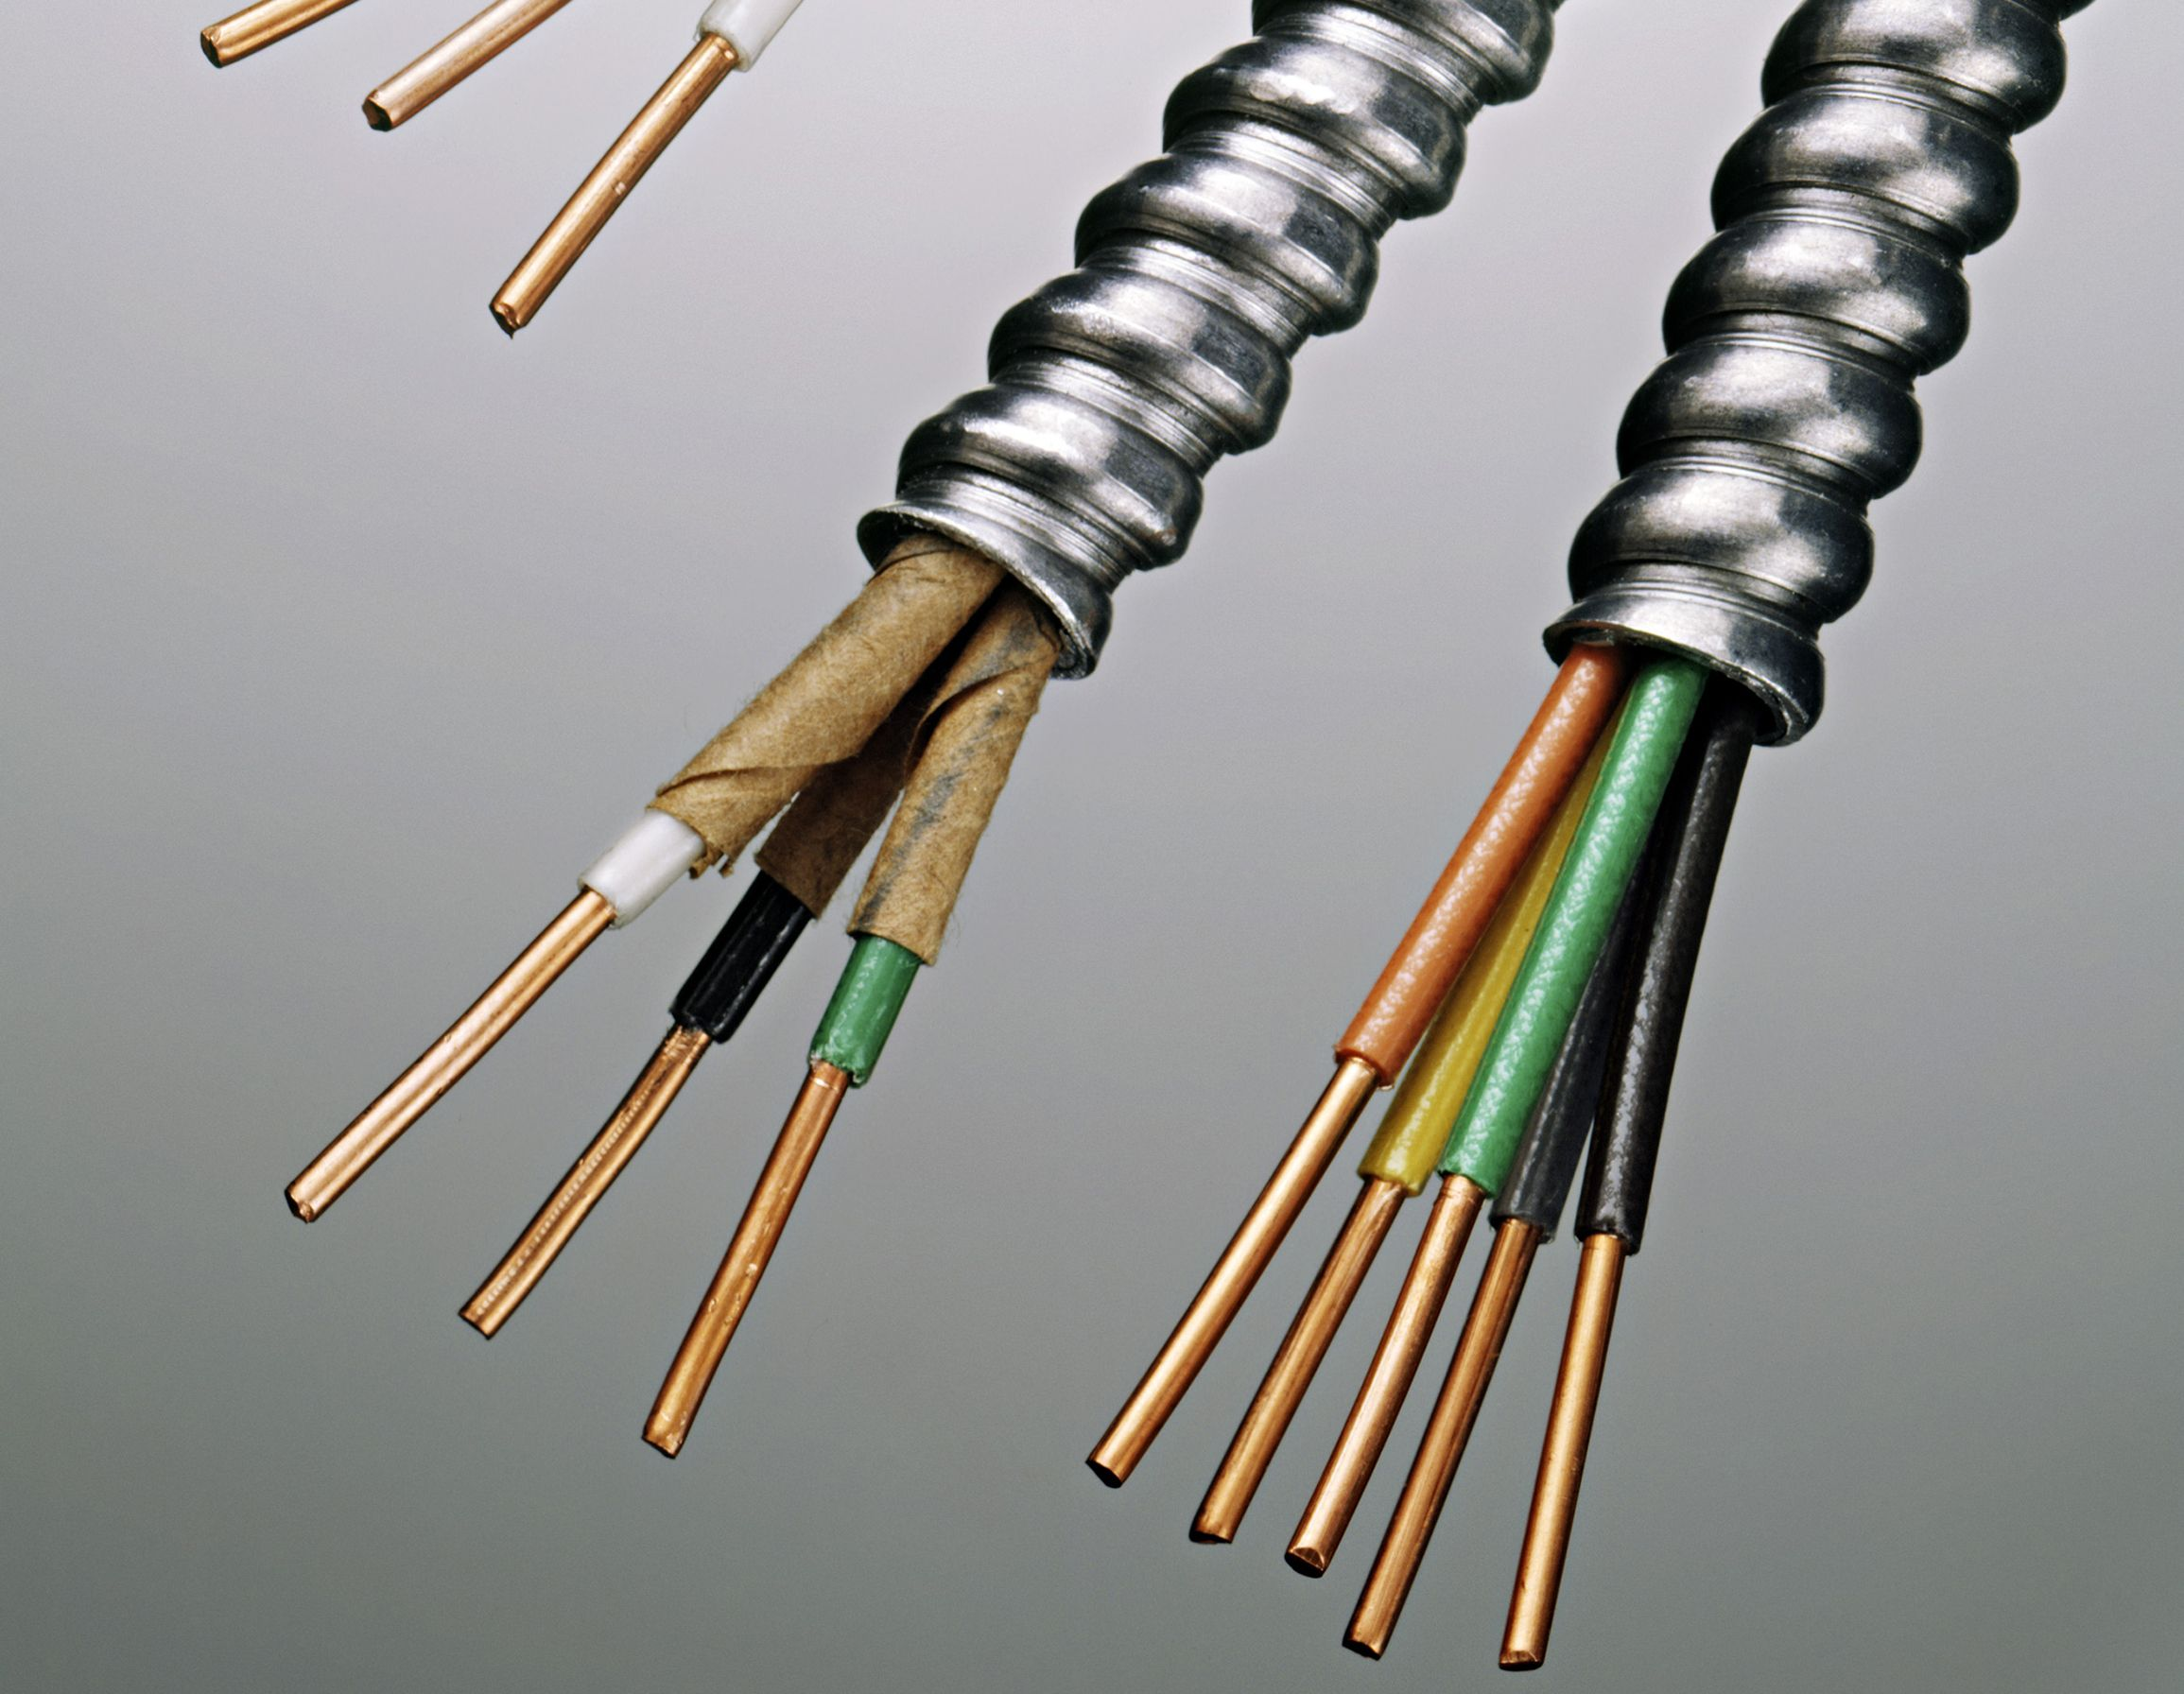 BX Cable - Comprehensive Guide to Armored Electrical Wire